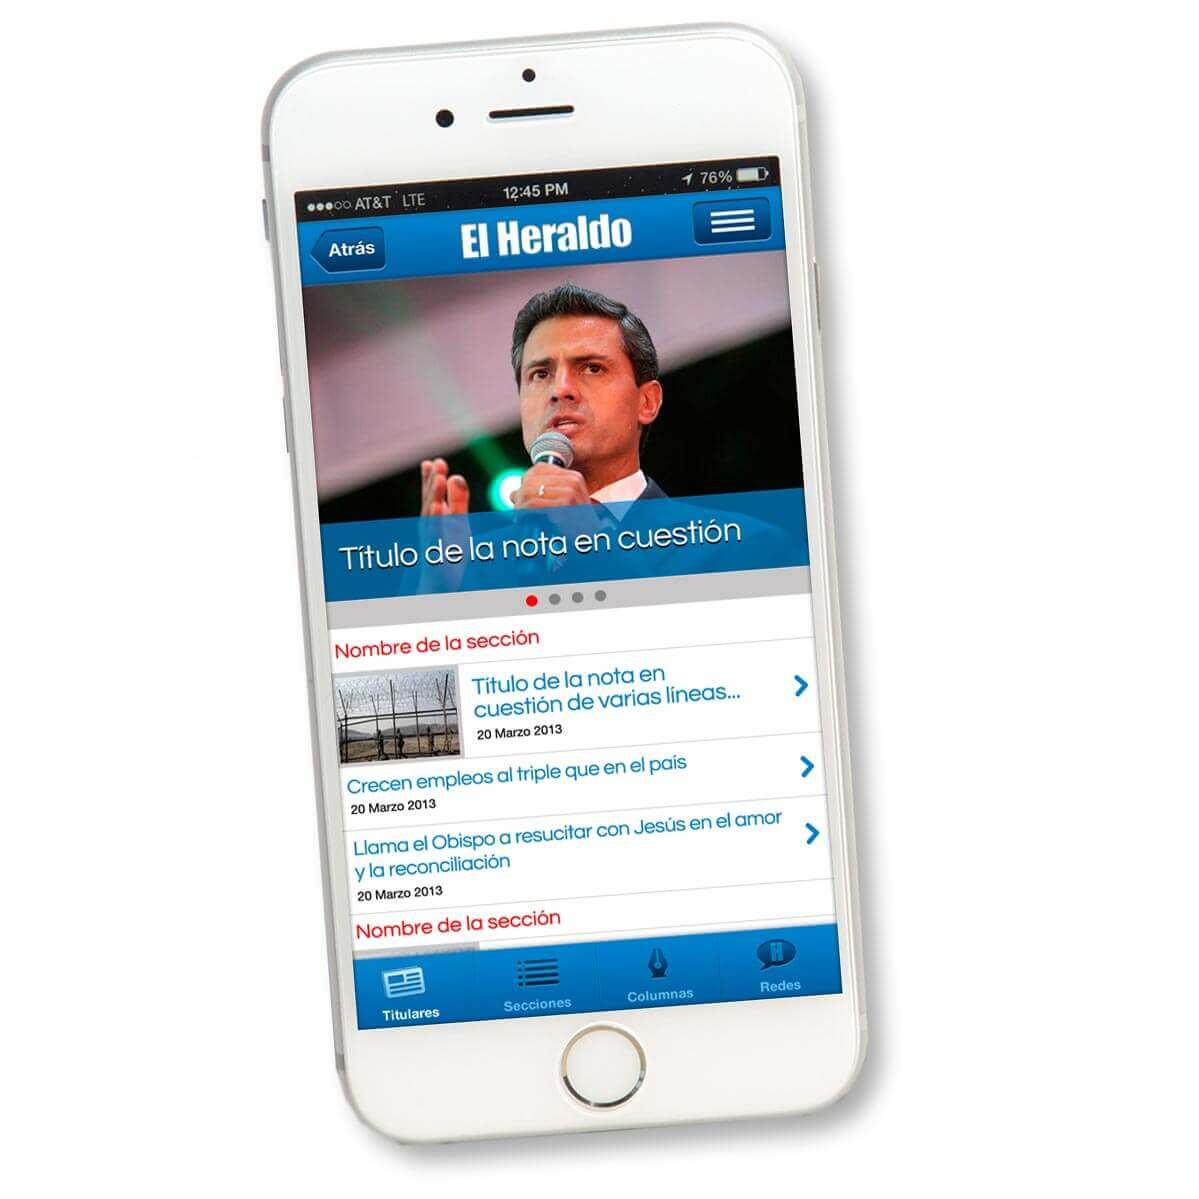 El Heraldo app photo